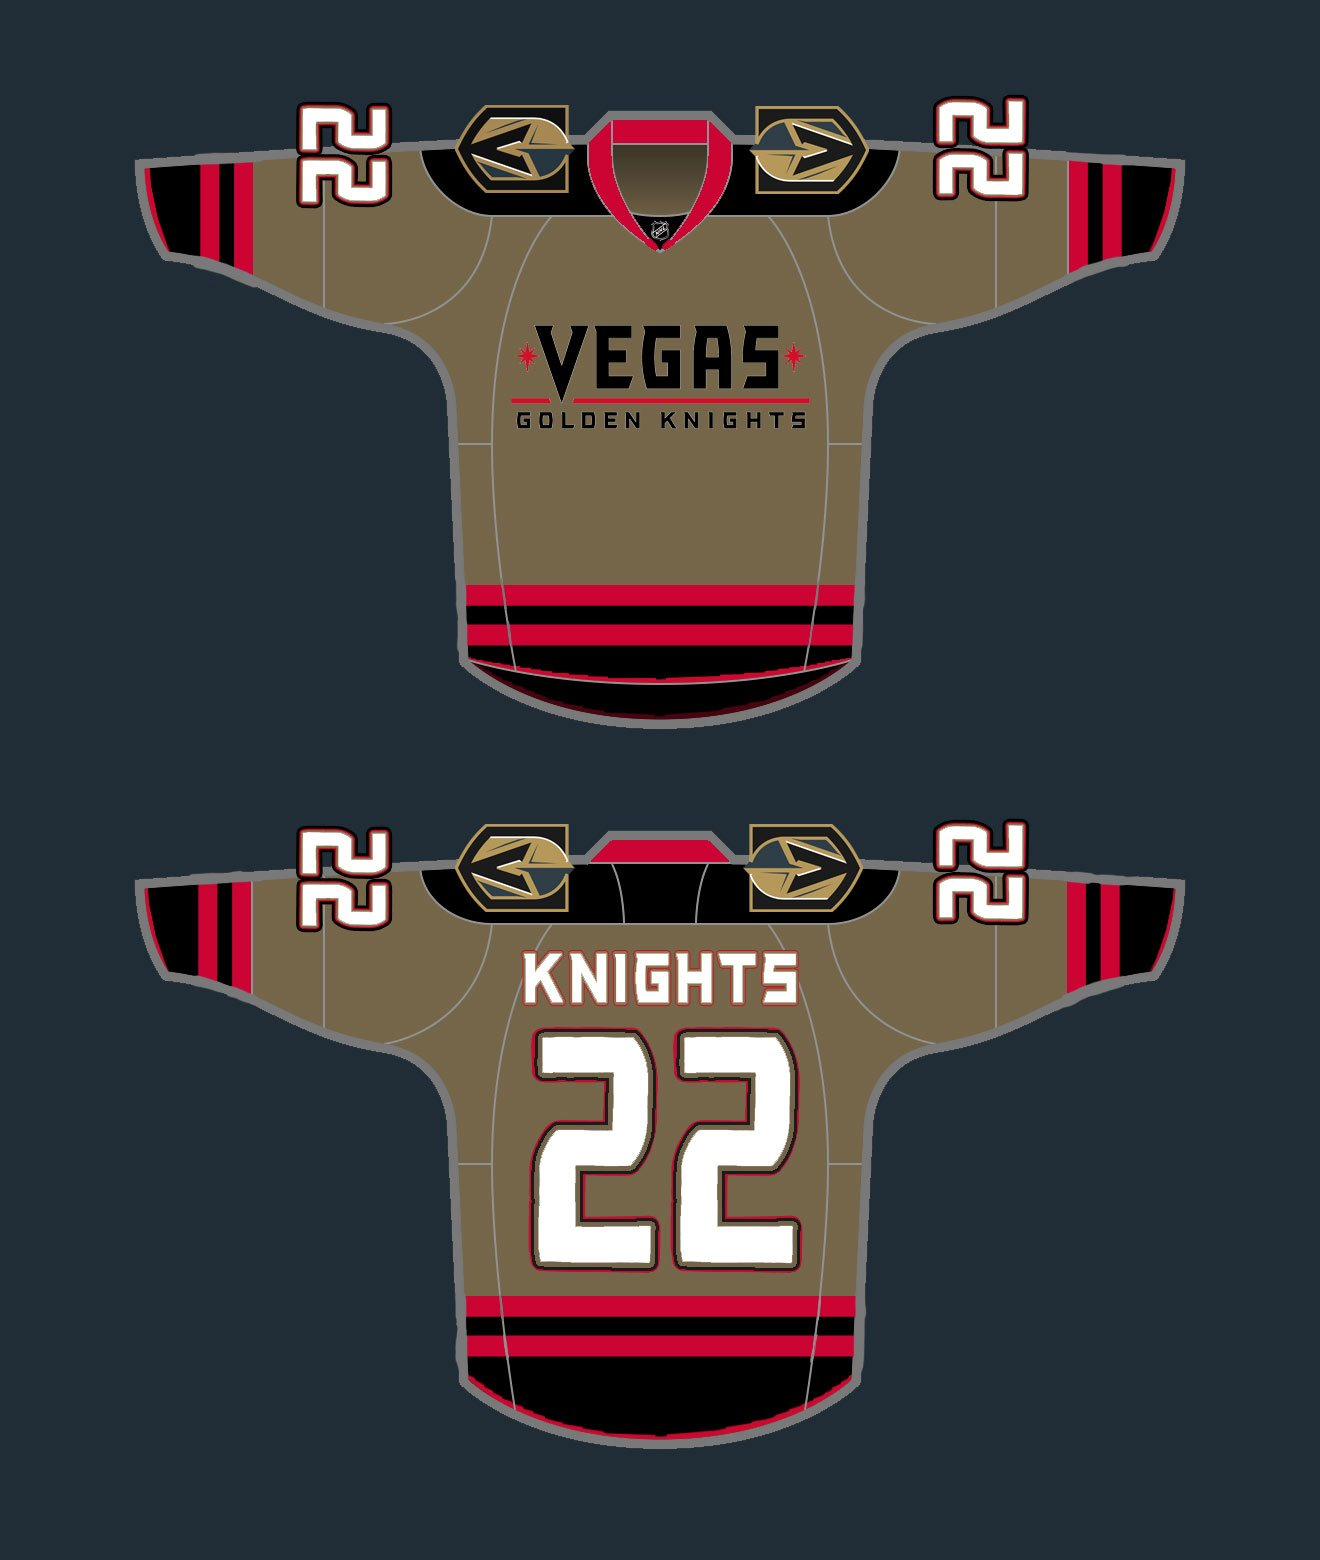 vegas-golden-knights-concept-alt3. The first two are about as close as we  can come to what we ve seen described. The final three are just us playing  around ... a30c7f981